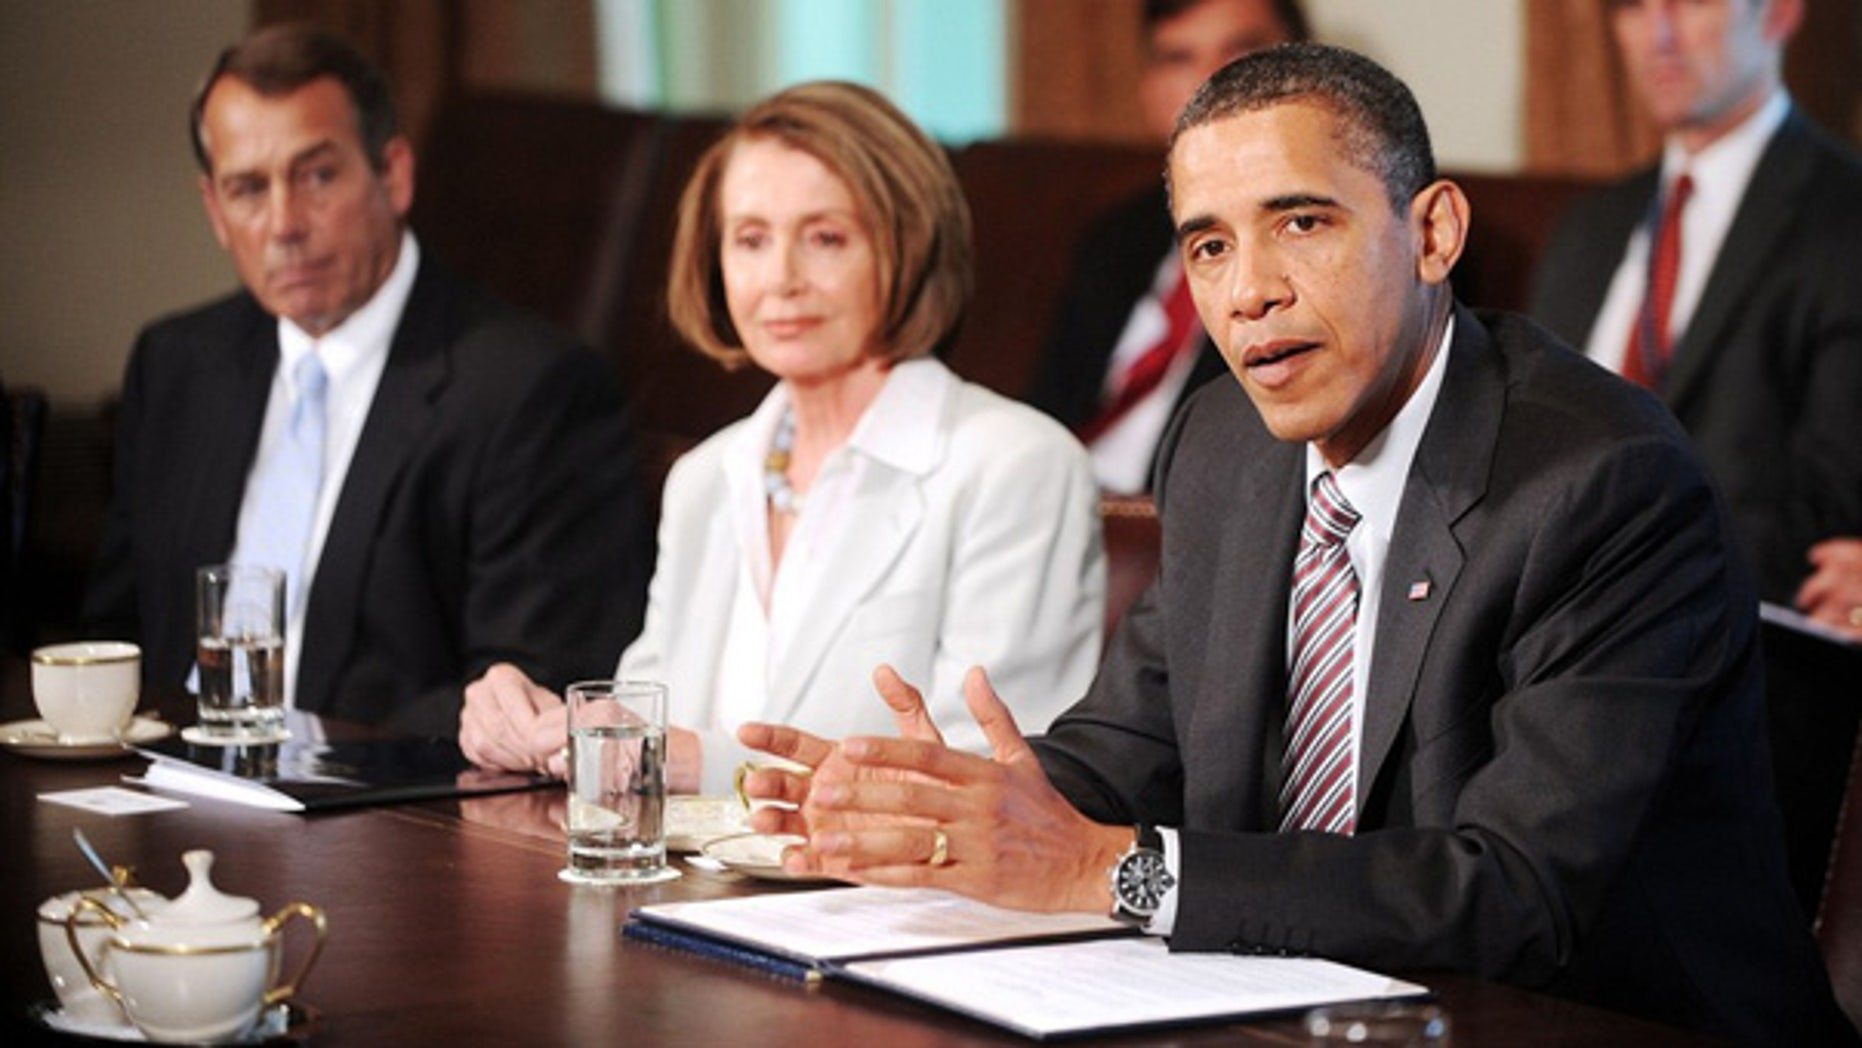 President Obama talks with House Speaker Nancy Pelosi and Republican House Minority Leader John Boehner in the White House earlier this year.